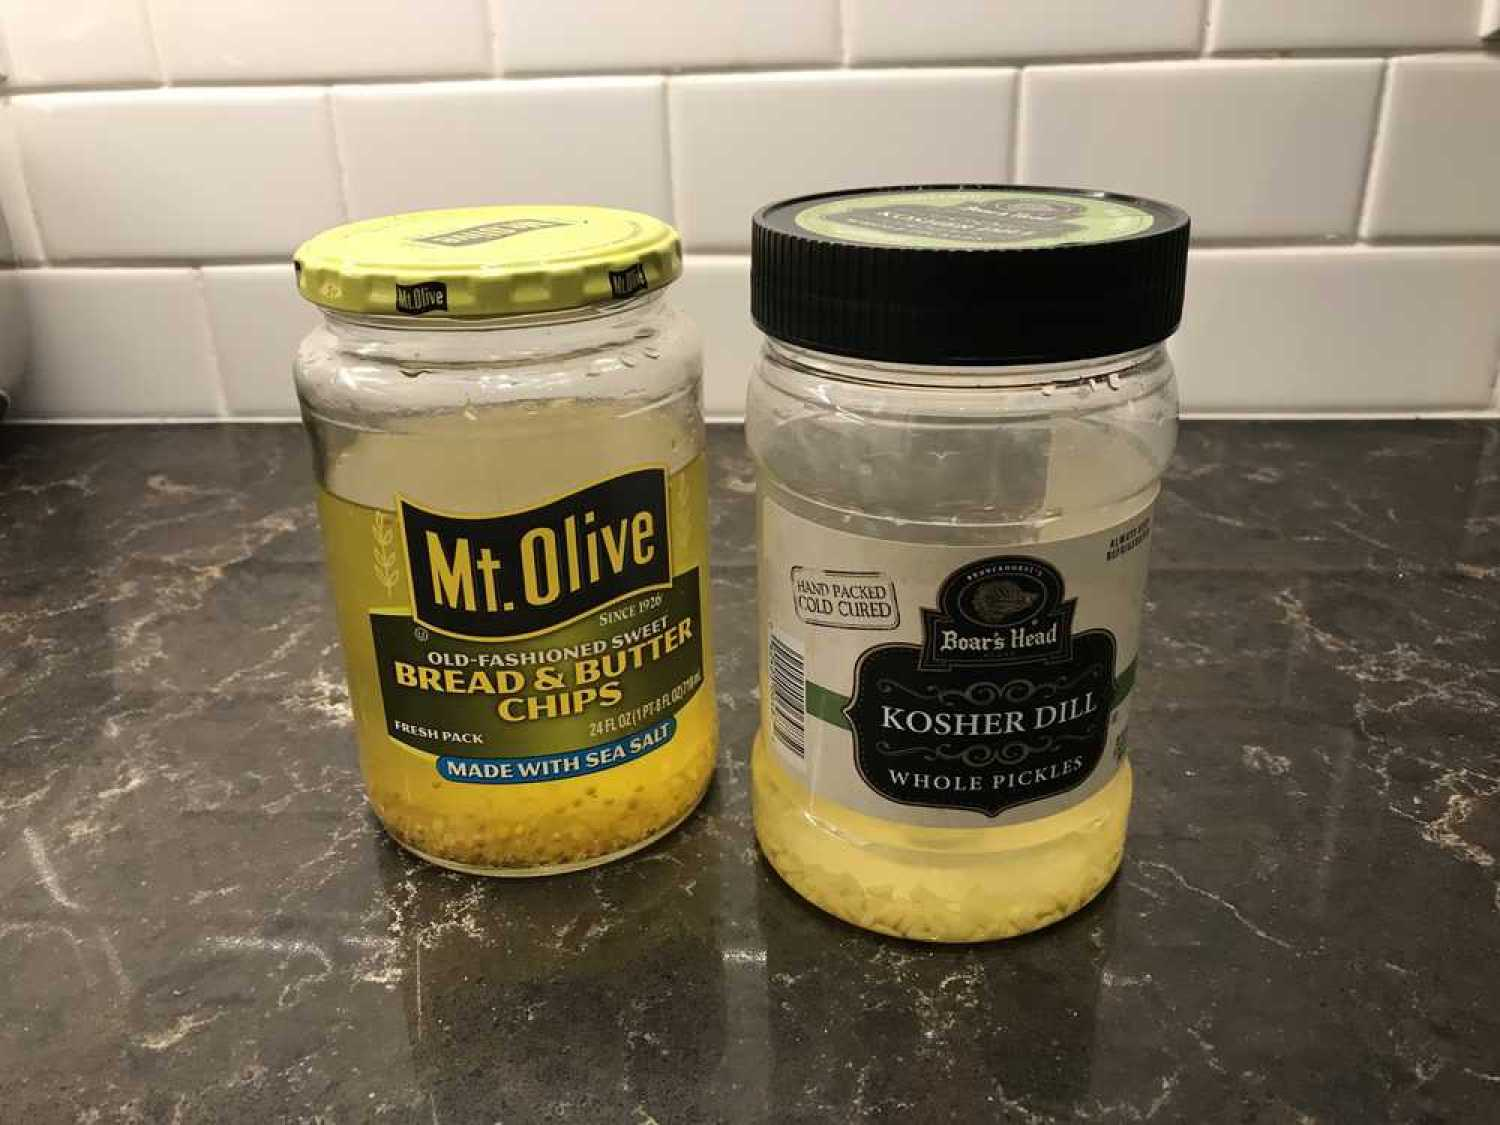 two-jars-of-pickle-juice-one-is-sweet-the-other-dill-and-please-dont-throw-them-out-because-pickle-juice-has-so-many-awesome-uses!